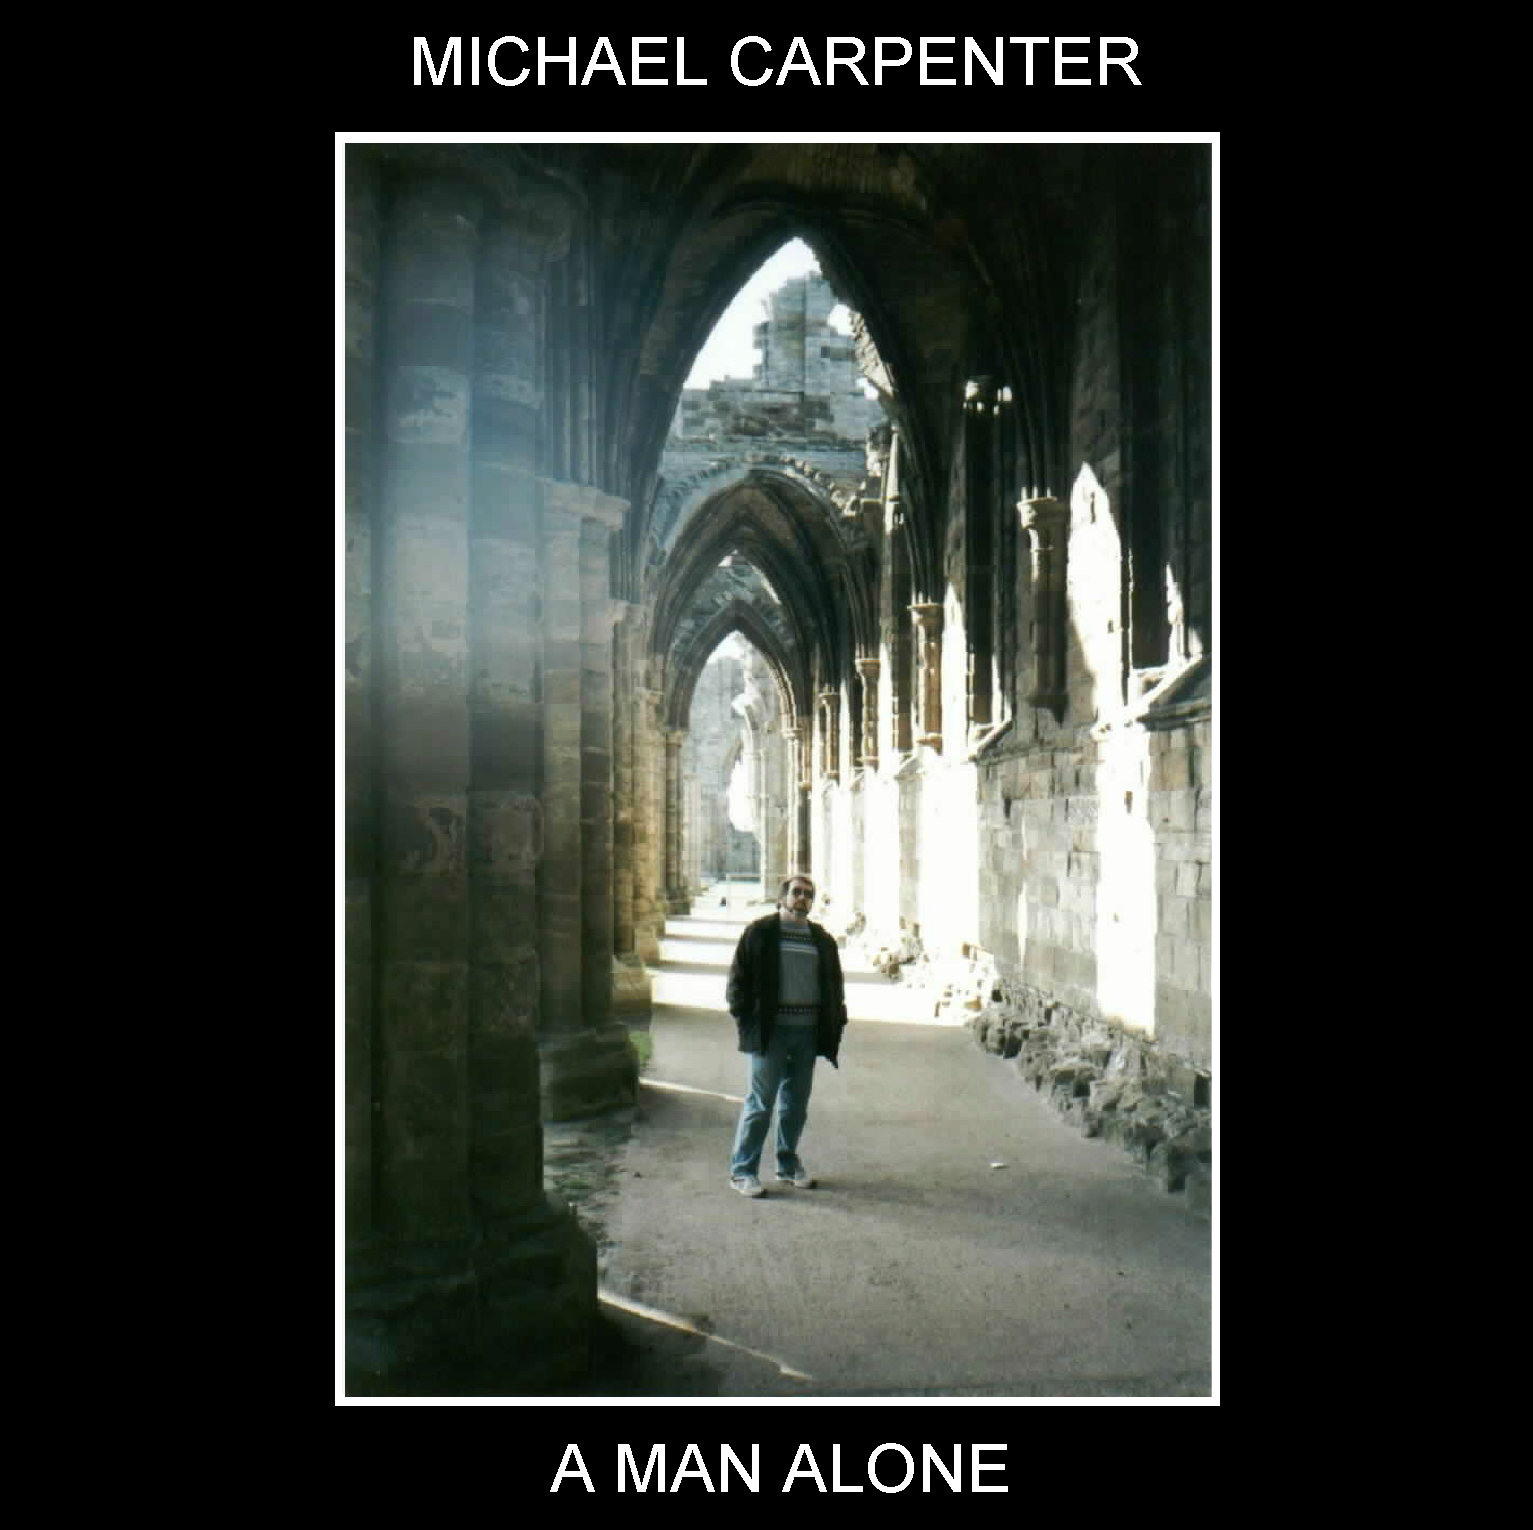 A Man Alone CD cover